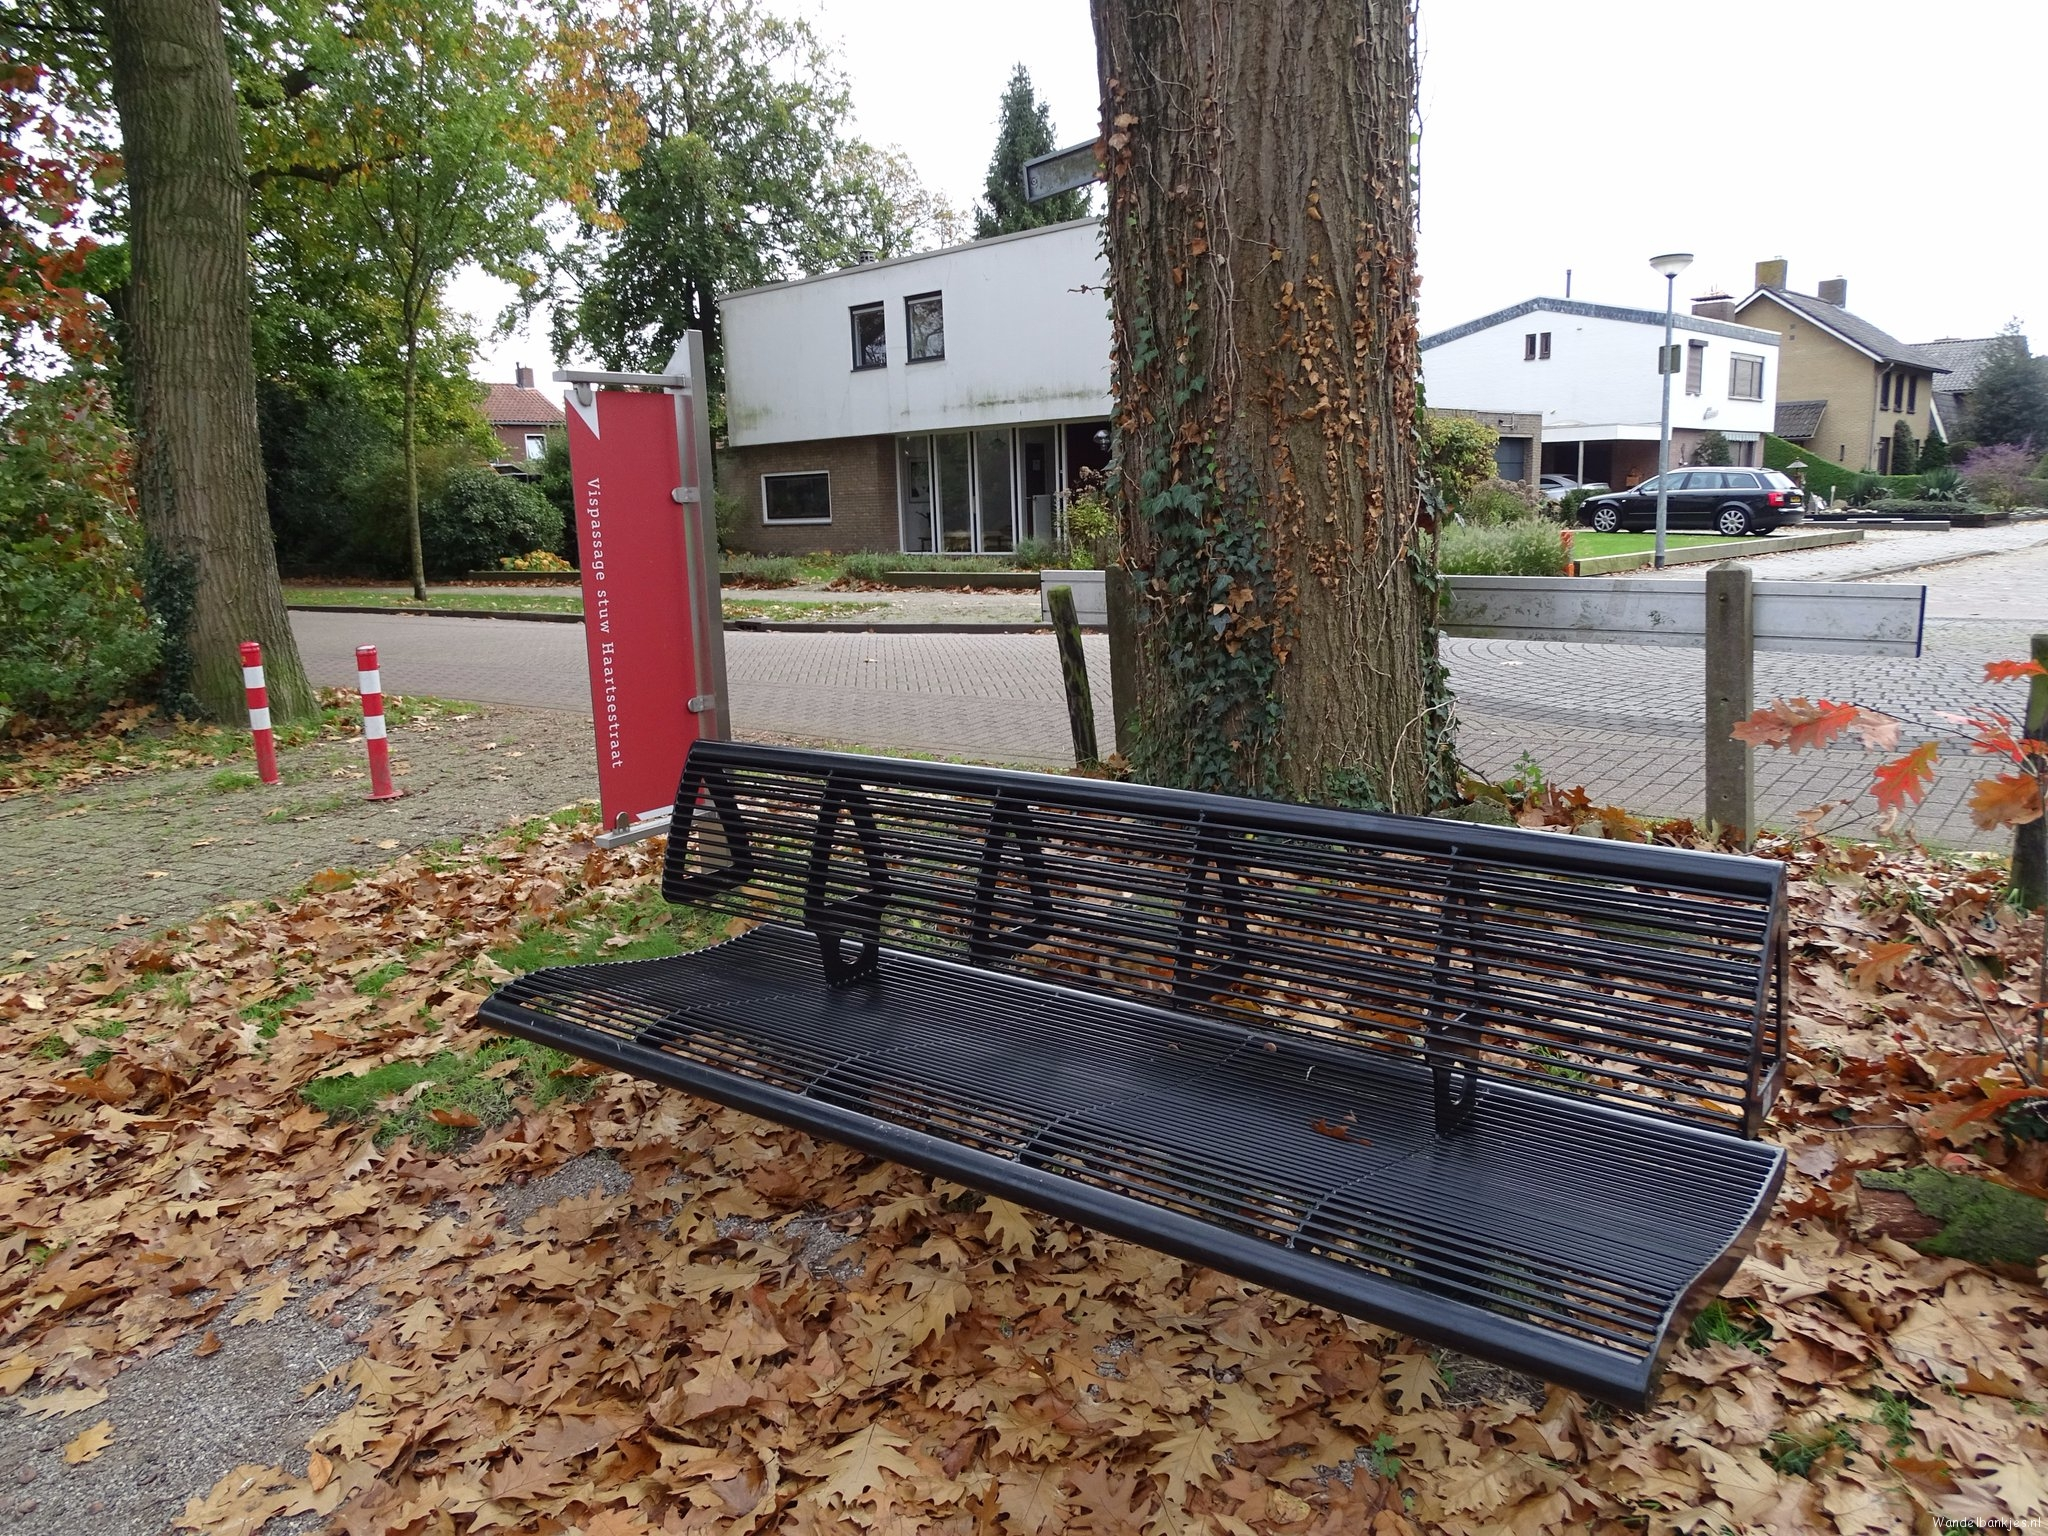 rt-jenjdevries-walking-benches-bench-along-the-plainspad-in-eels-httpst-coxrxx6nfygh